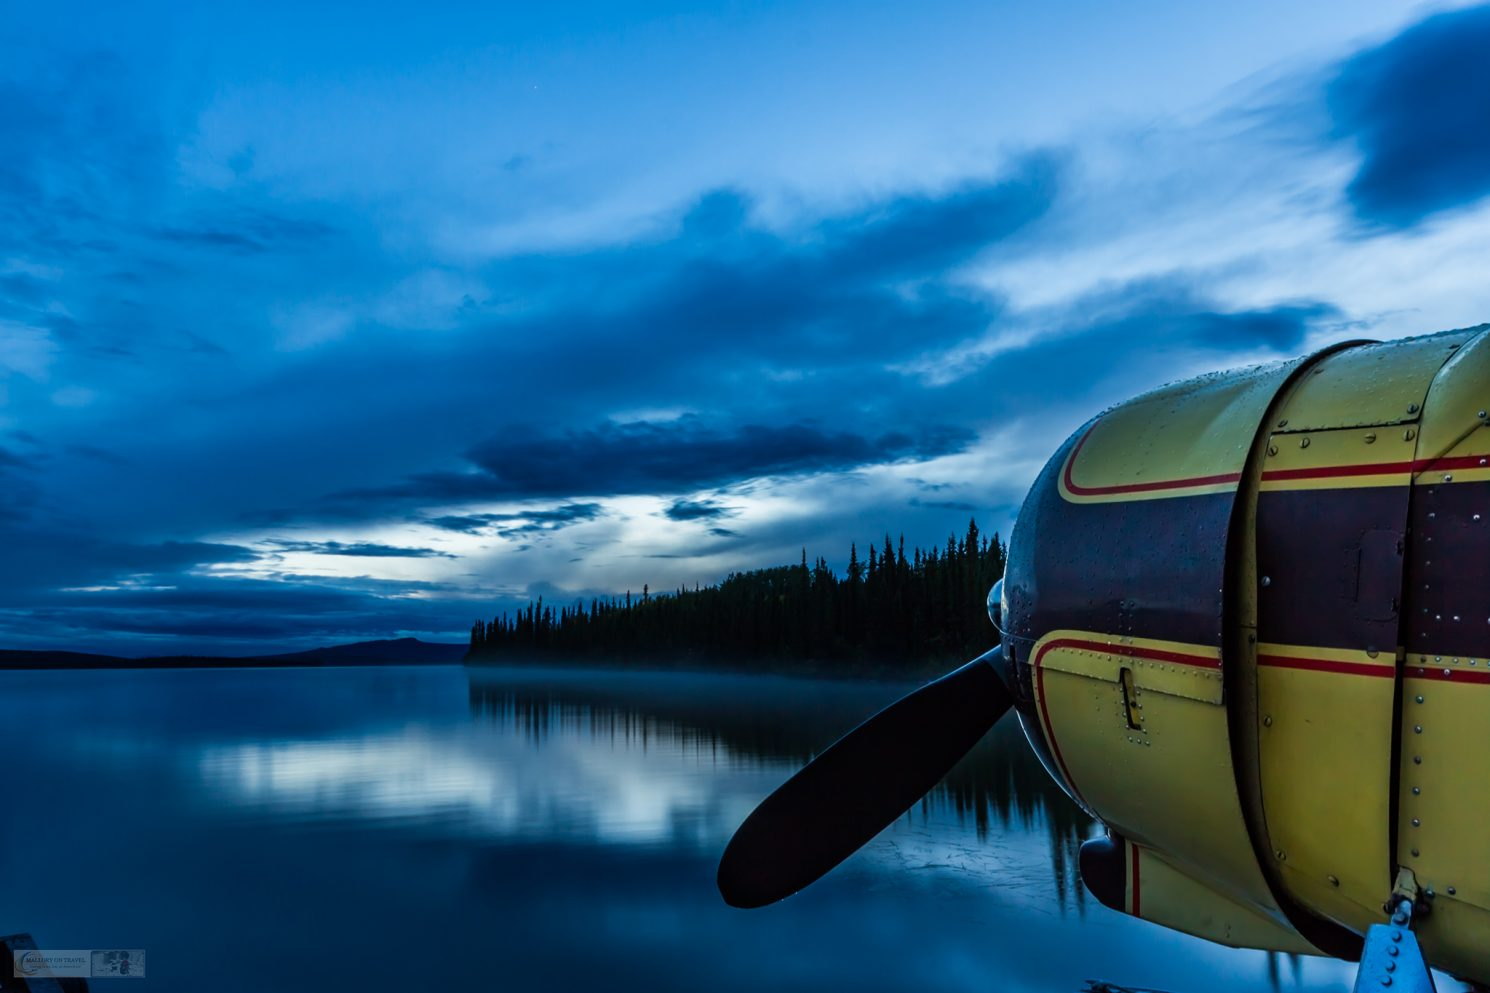 Float plane in the remote wilderness of the North west Territories of The Yukon, Canada on Mallory on Travel adventure, adventure travel, photography Iain Mallory_Yukon 006